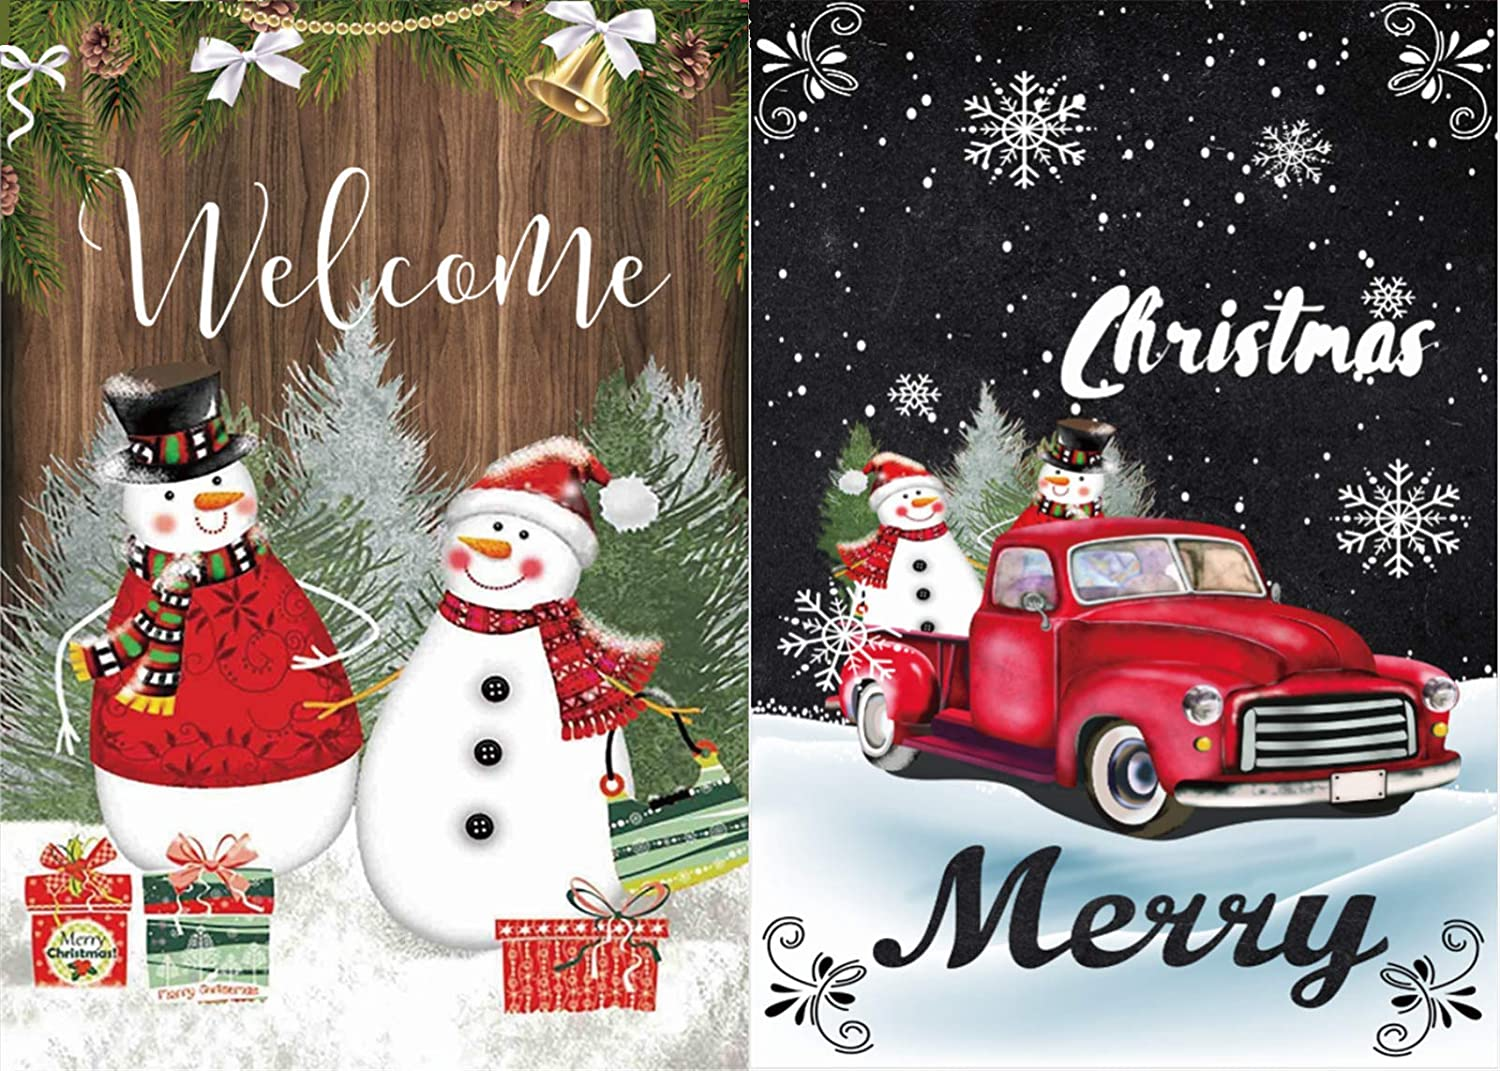 Pack of 2 Merry Christmas Garden Flag Double Sided Snowman Winter Garden Flag Holiday Yard Decorations Outdoor Flags 12.5 x18